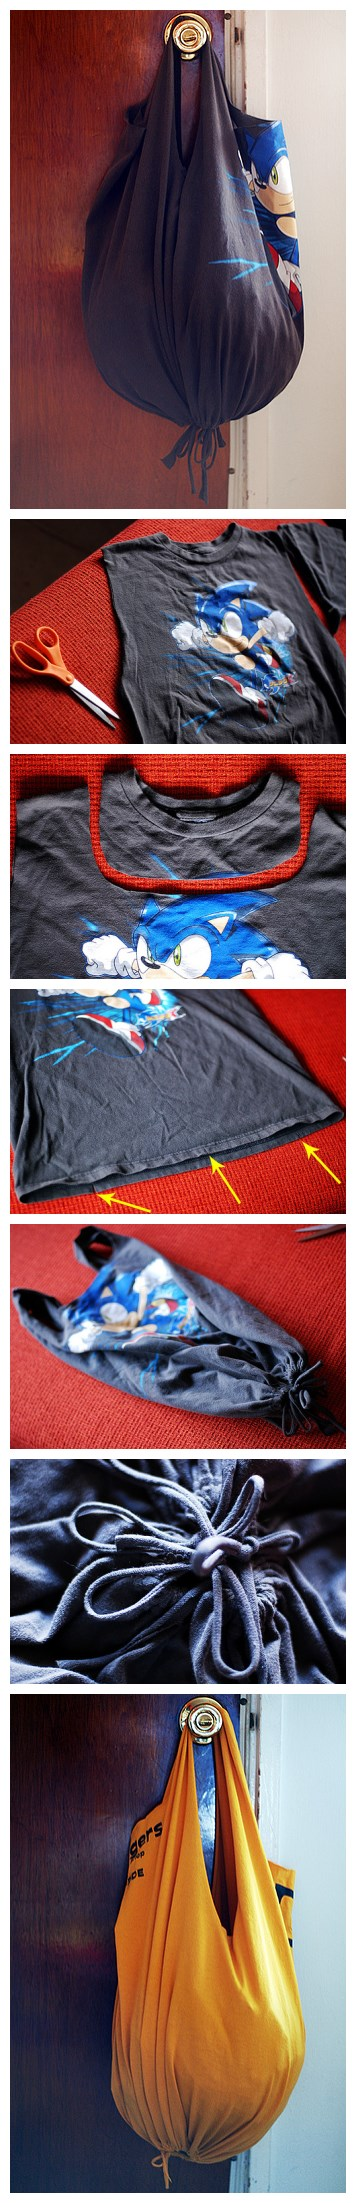 How to make no-sew recycled t-shirt tote bag in 10 minutes step by step DIY tutorial instructions